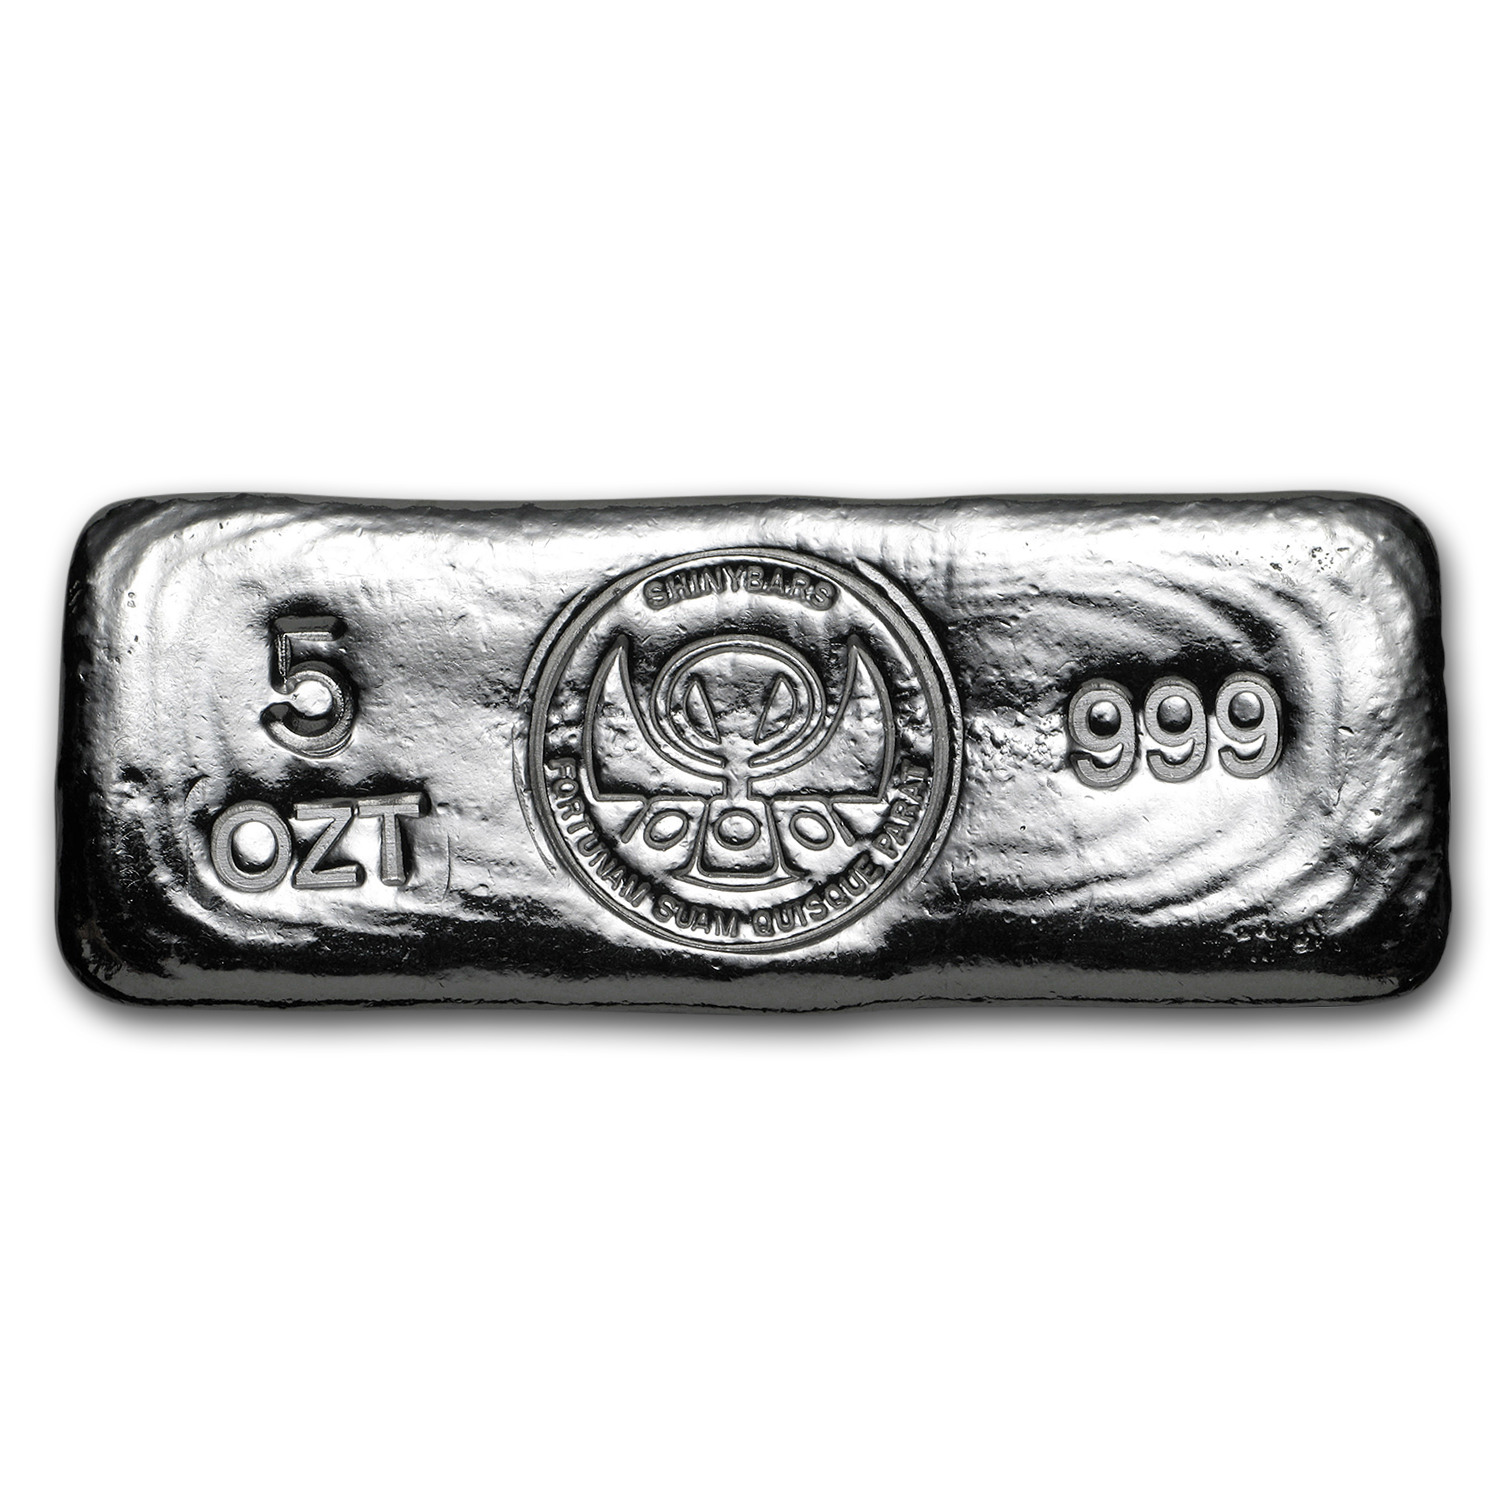 5 oz Silver Kit-Kat Bar - ShinyBars